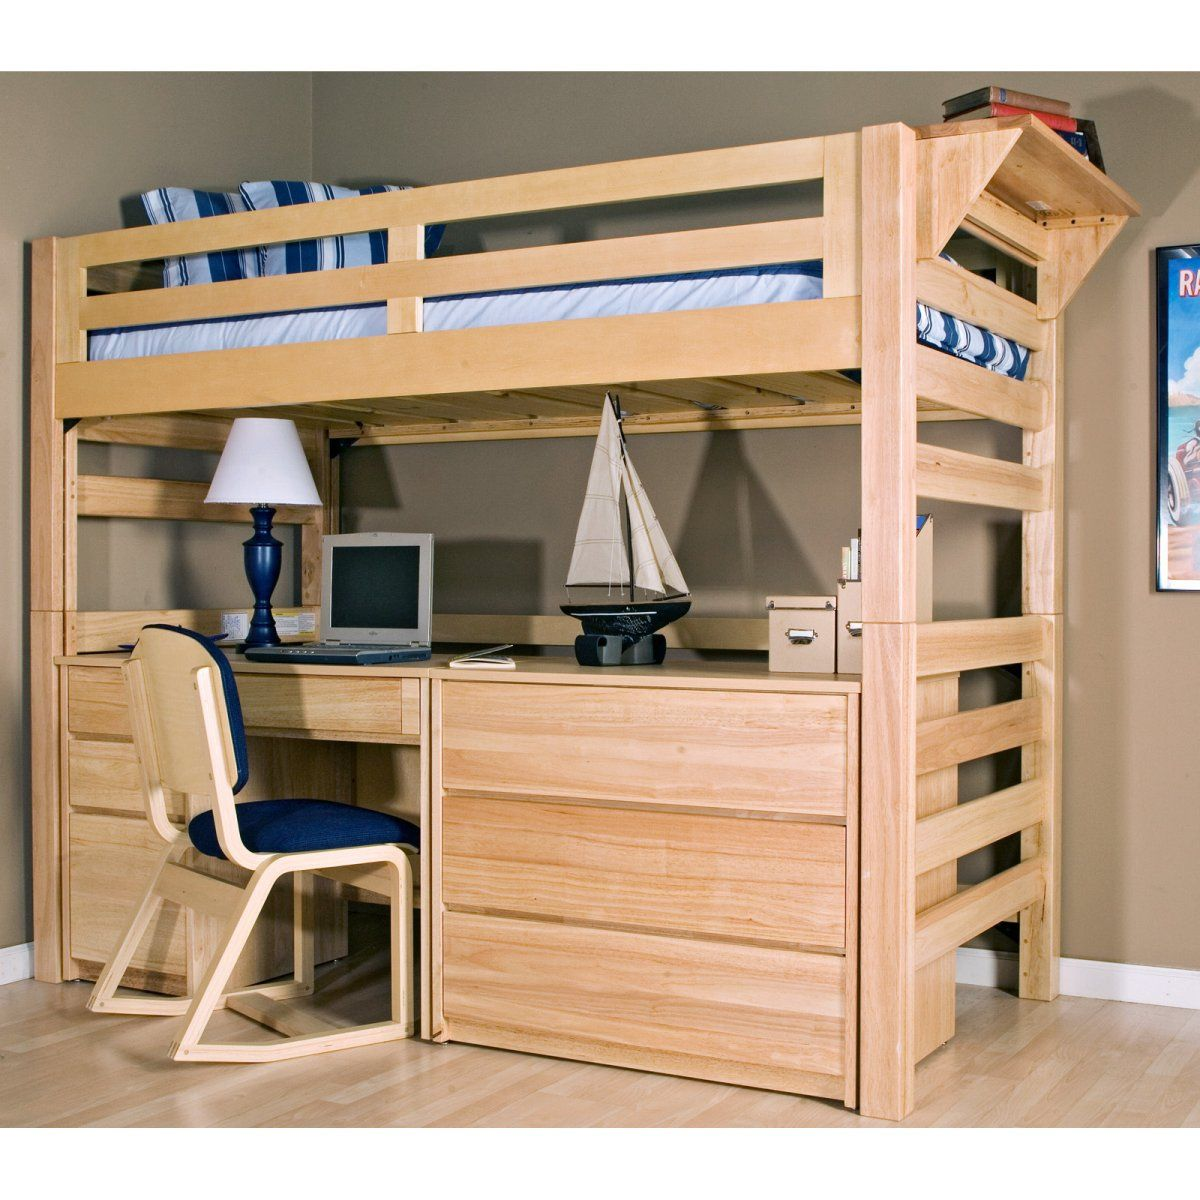 Twin Bunk Bed with Desk Underneath Lowes Paint Colors